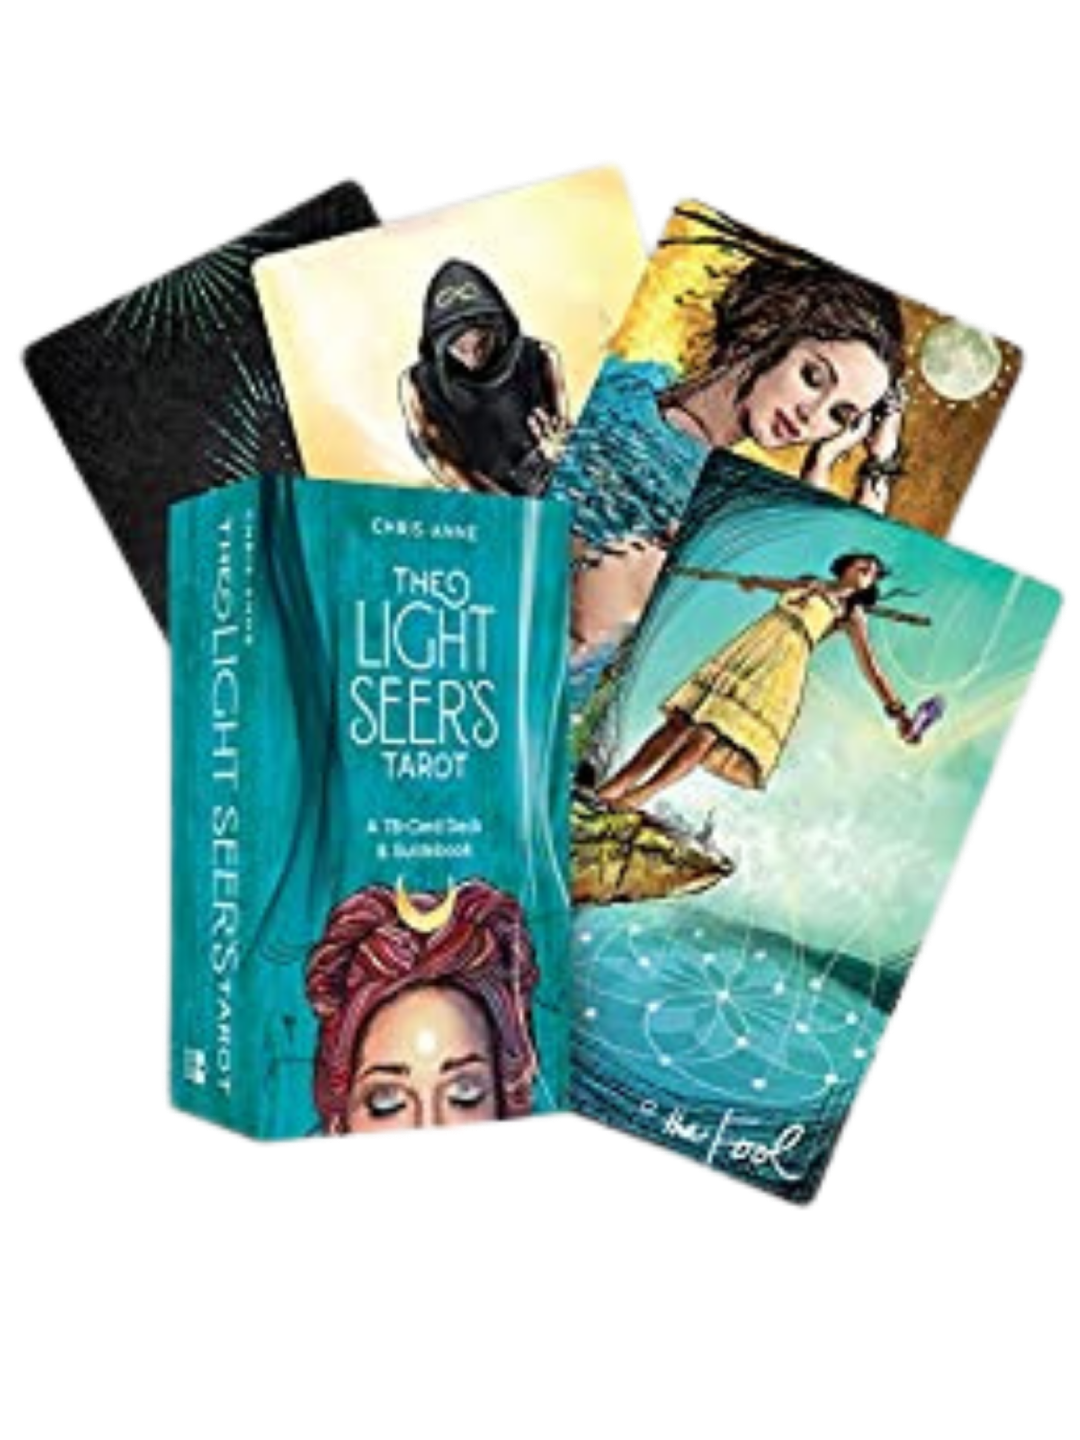 tarot light seekers